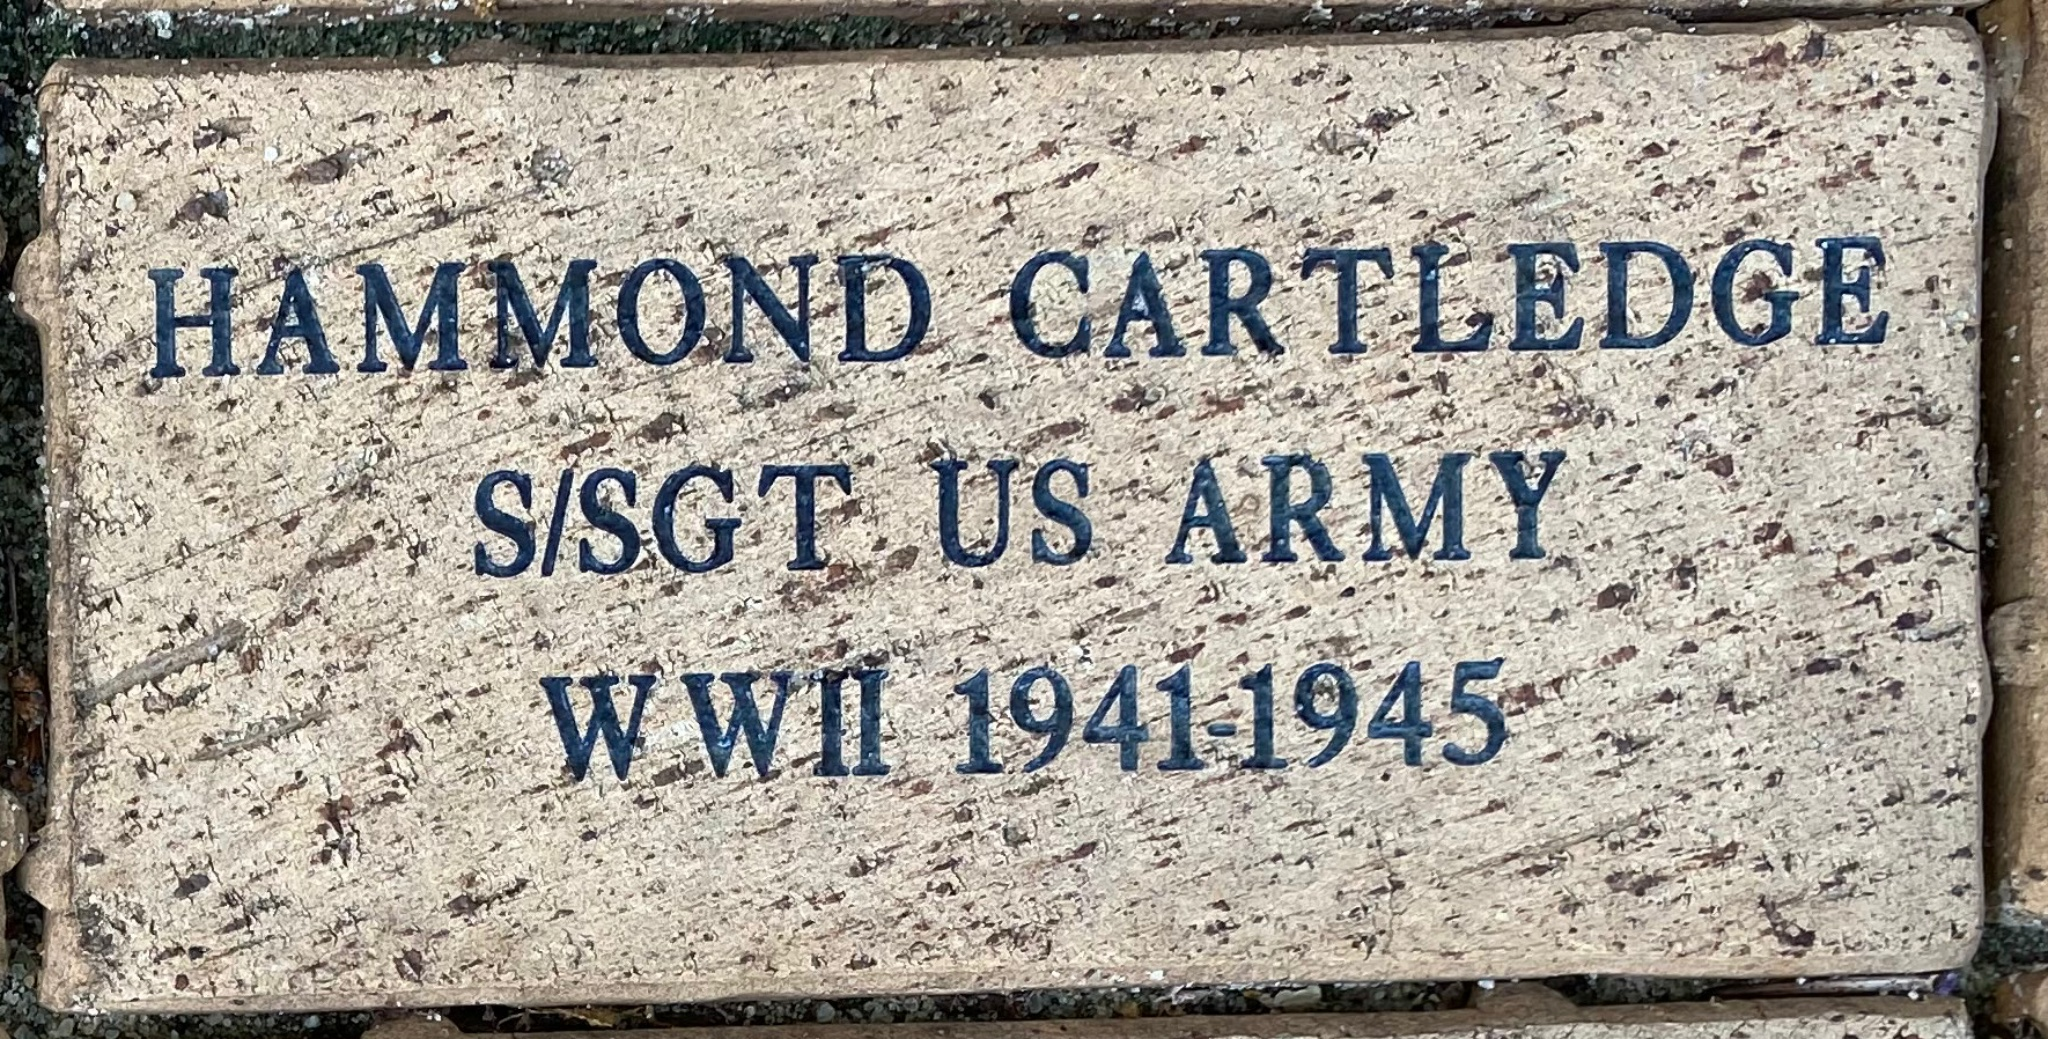 HAMMOND CARTLEDGE S/SGT US ARMY WWII 1941-1945